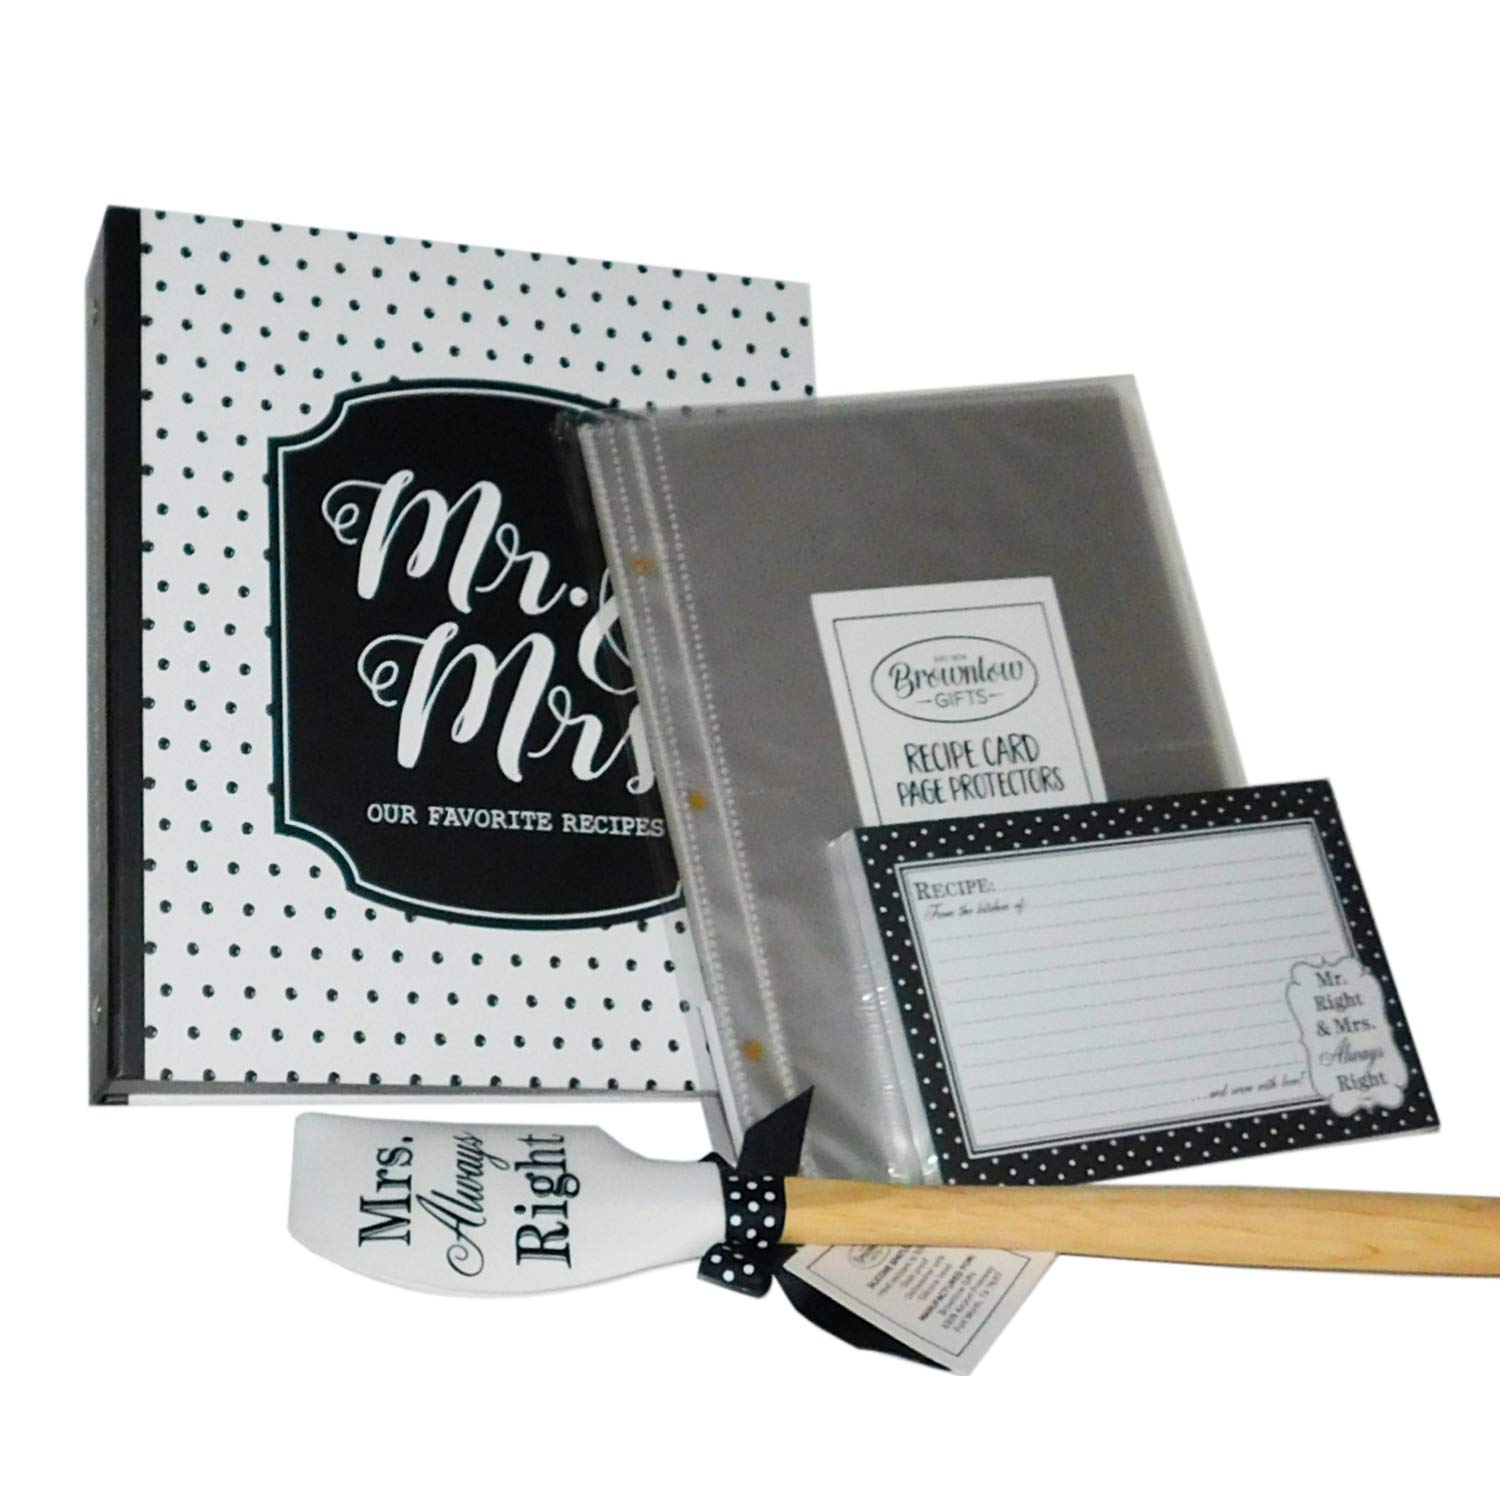 Mr Mrs Always Right Kitchen Gift Set Binder With 4 x 6 Recipe Cards Acetate Sheet Protectors Dividers Spatula in Black & White 4 Items Total for Bridal Shower Wedding Anniversary by Brownlow Gifts